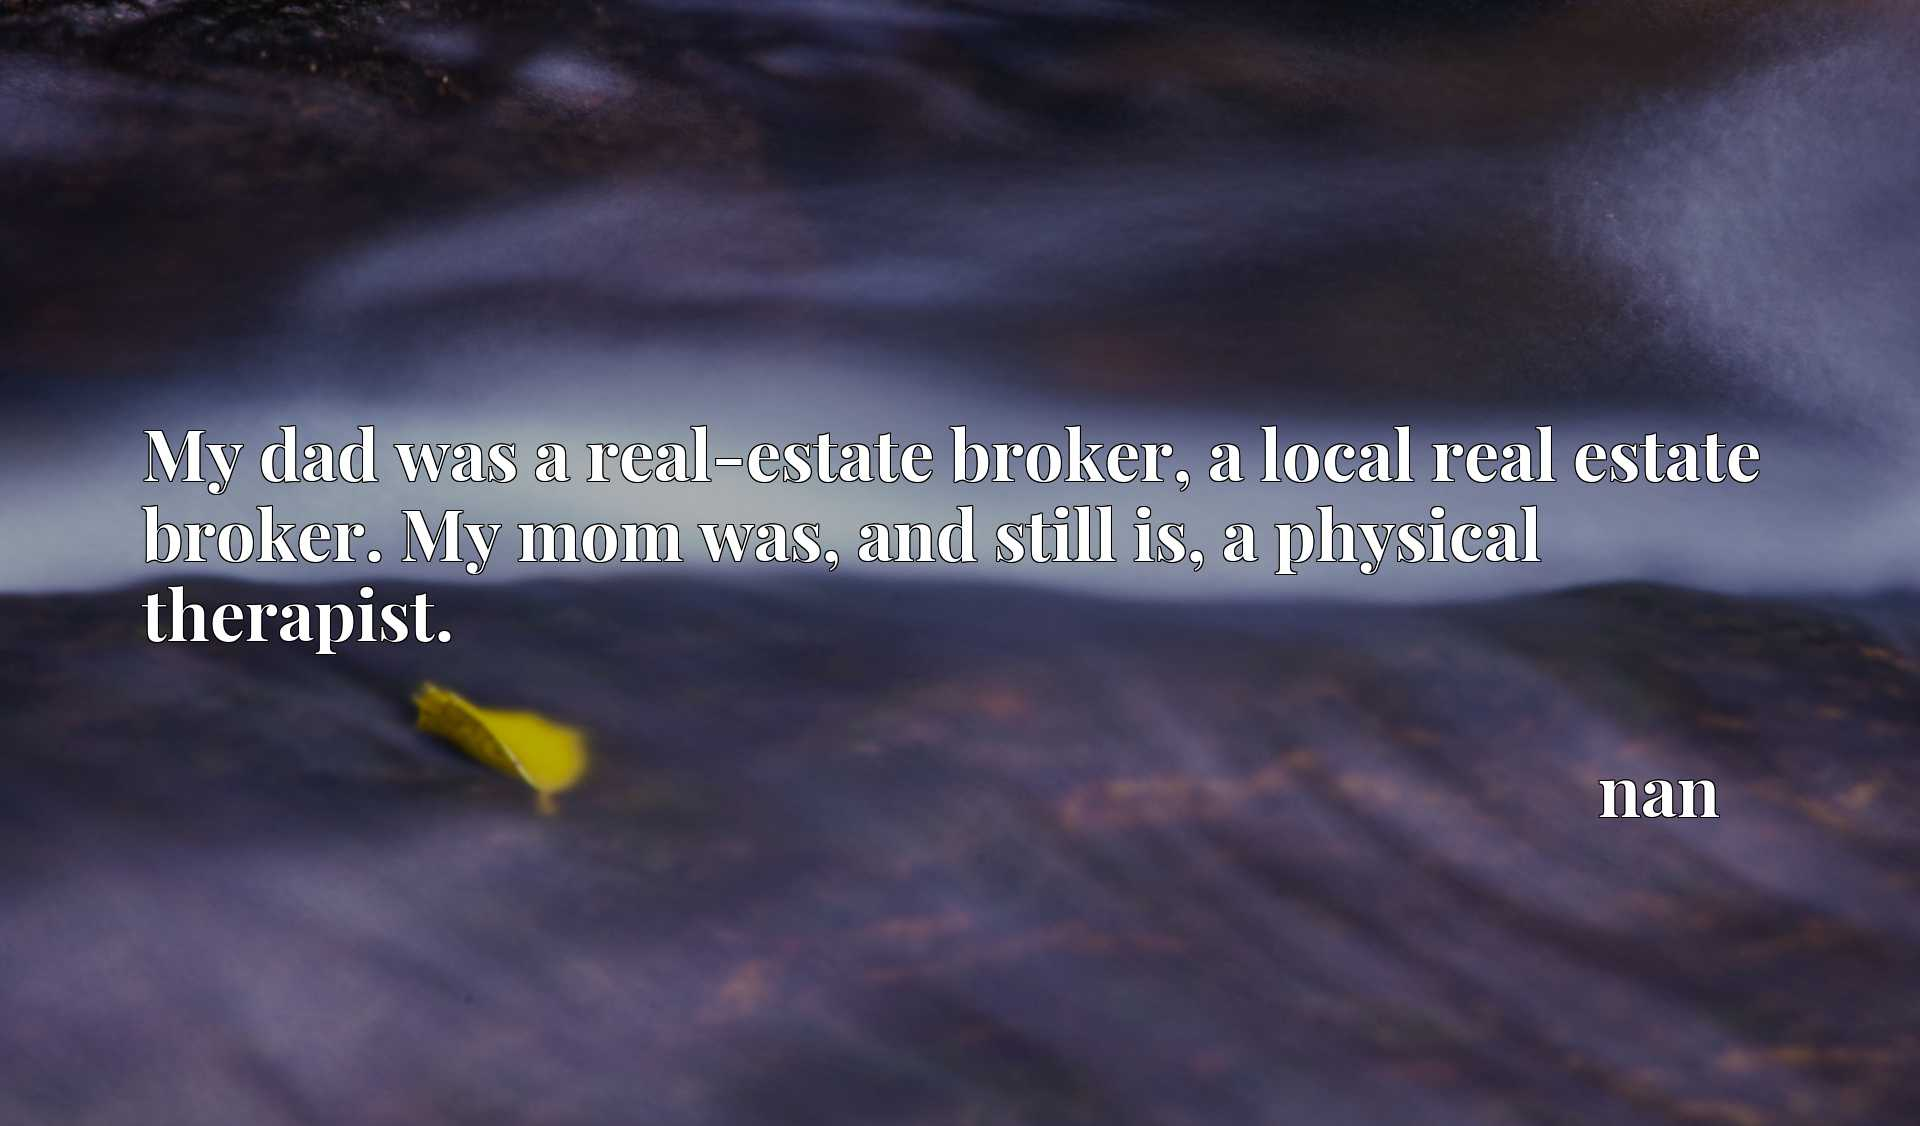 My dad was a real-estate broker, a local real estate broker. My mom was, and still is, a physical therapist.